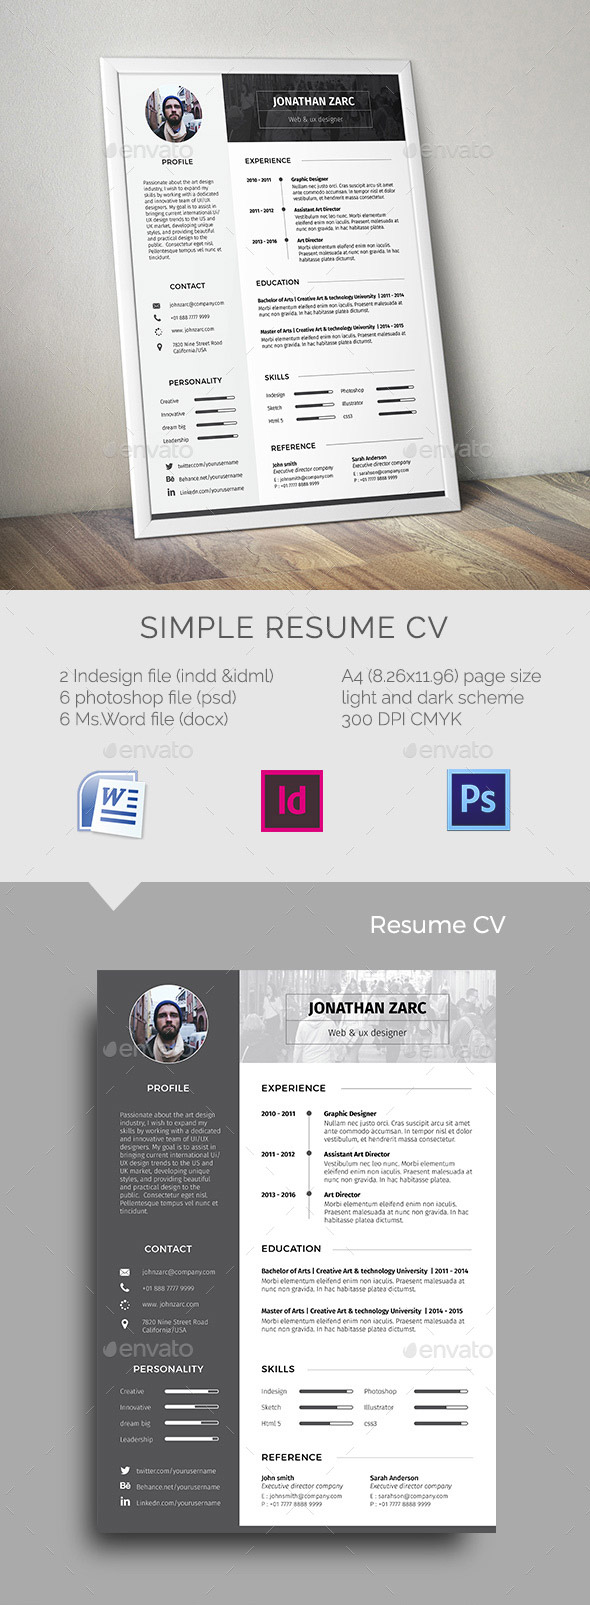 how to structure your resume